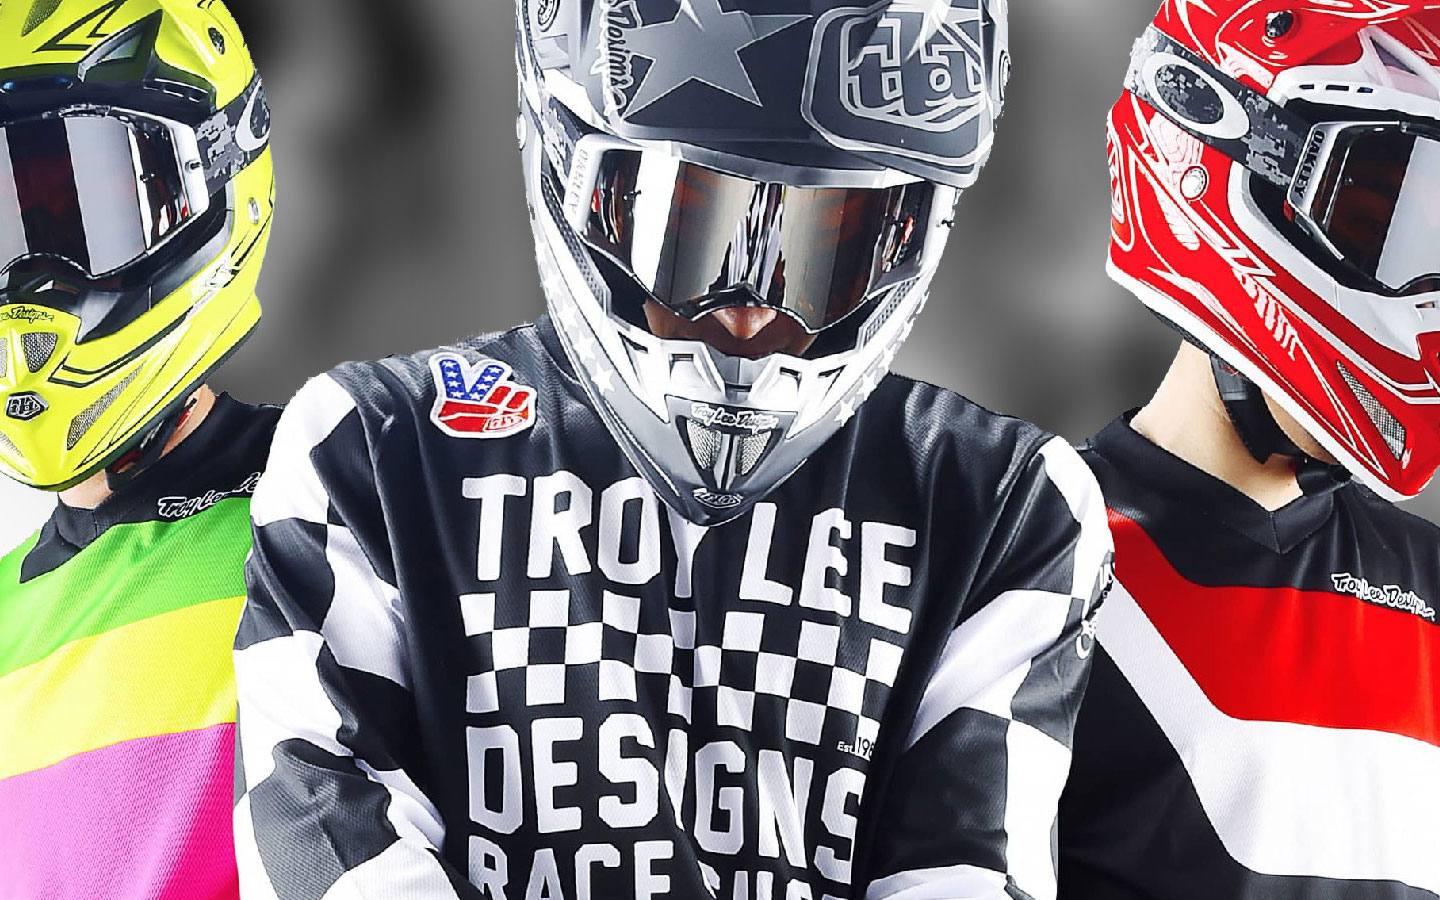 Troy Lee, une passion, un individu